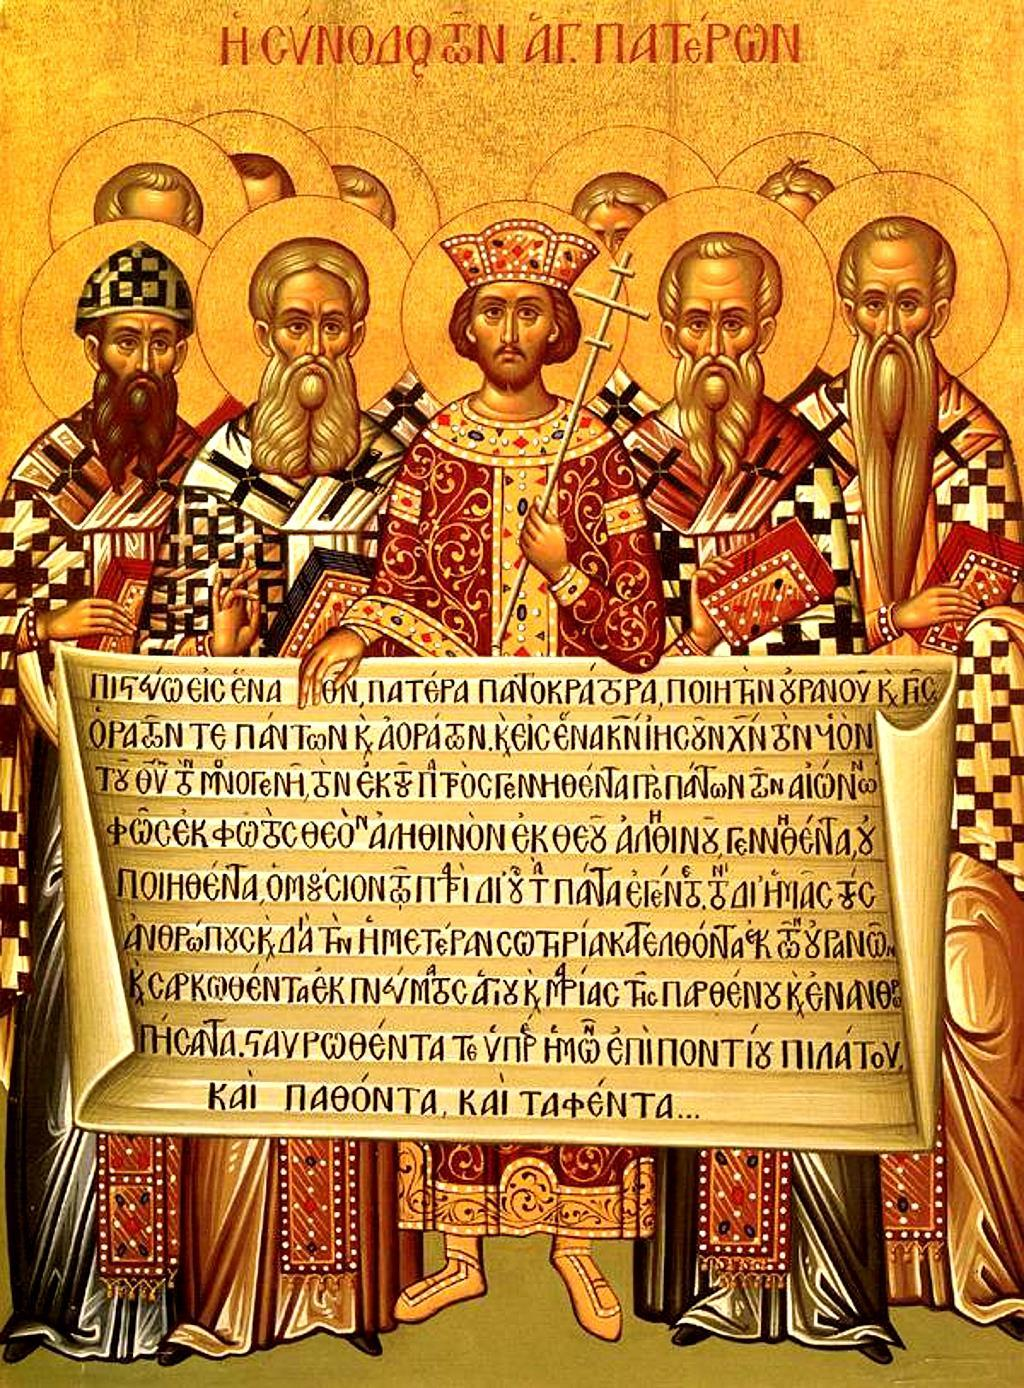 1 st Council of Nicea 325 AD Icon depicting the Emperor Constantine and the bishops of the First